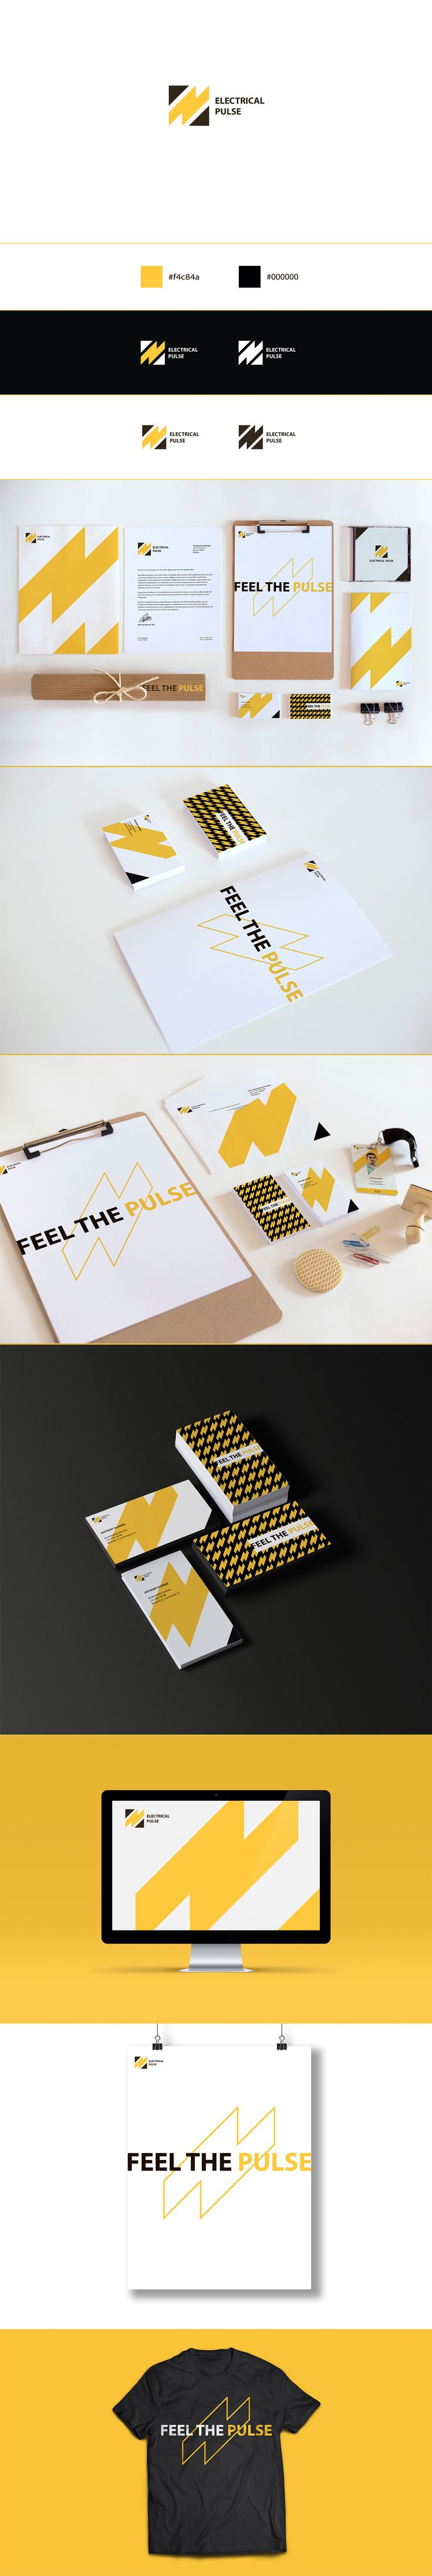 Electrical Pulse - Brand Identity on Behance